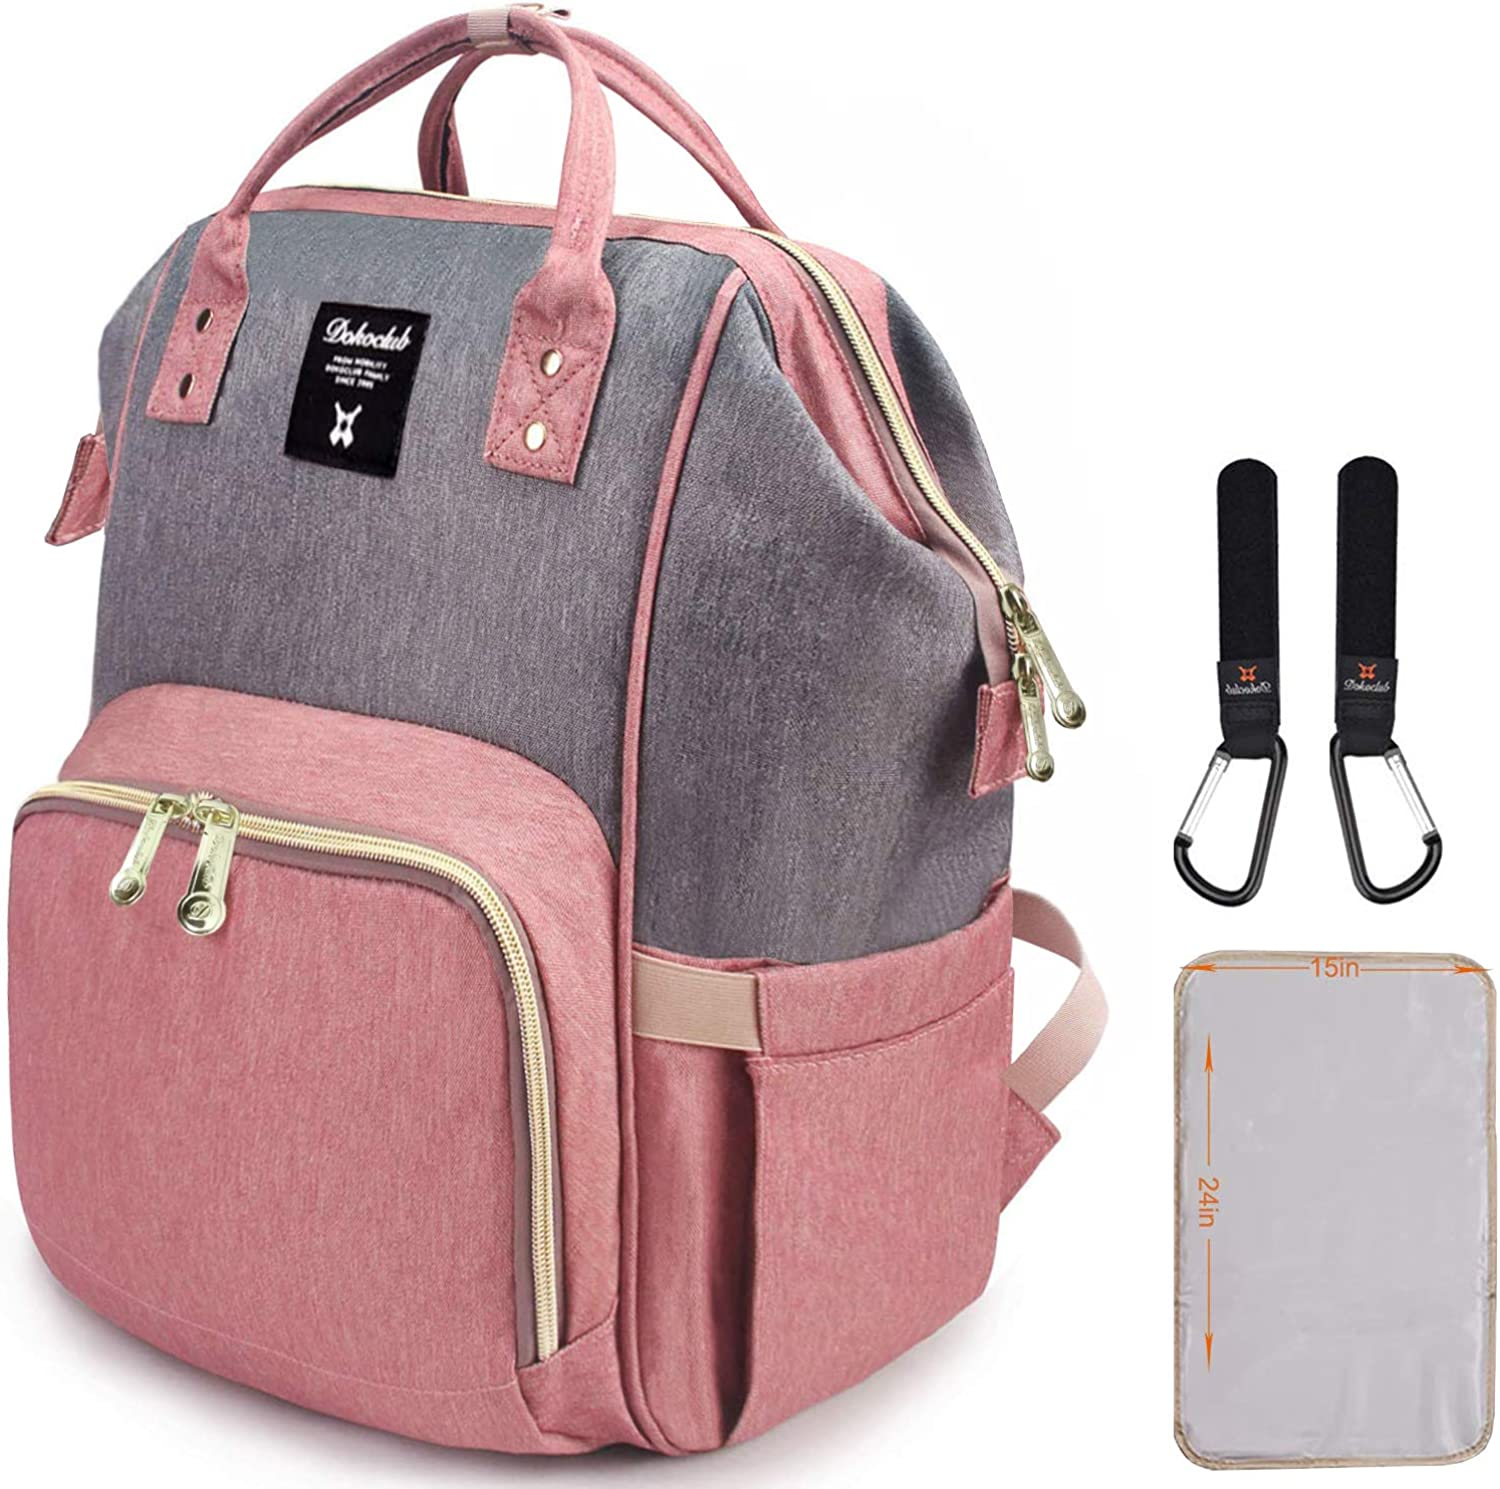 Diaper Bag Backpack, Waterproof Large Capacity Stylish and Durable Baby Bags …